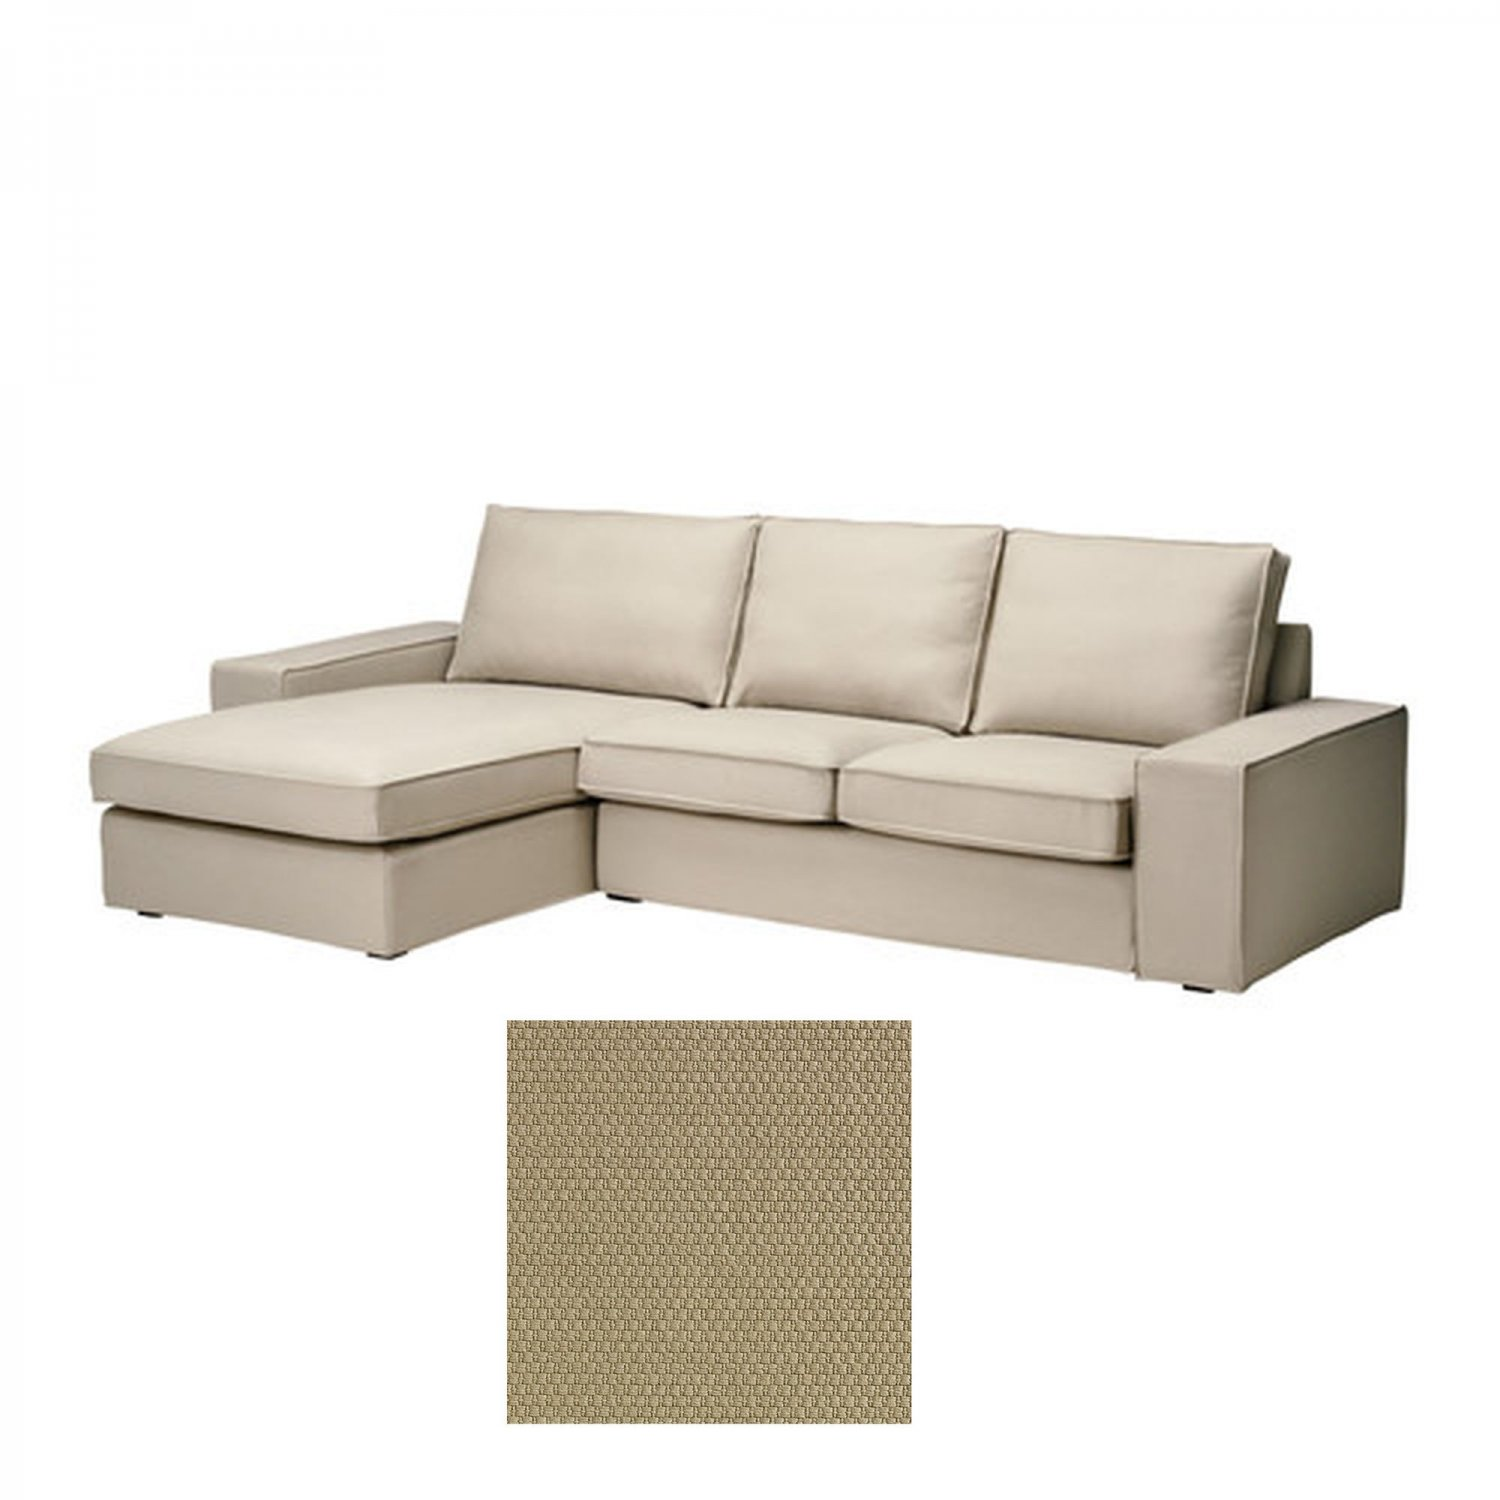 Ikea kivik 2 seat loveseat sofa w chaise lounge slipcover for 2 seater chaise lounge